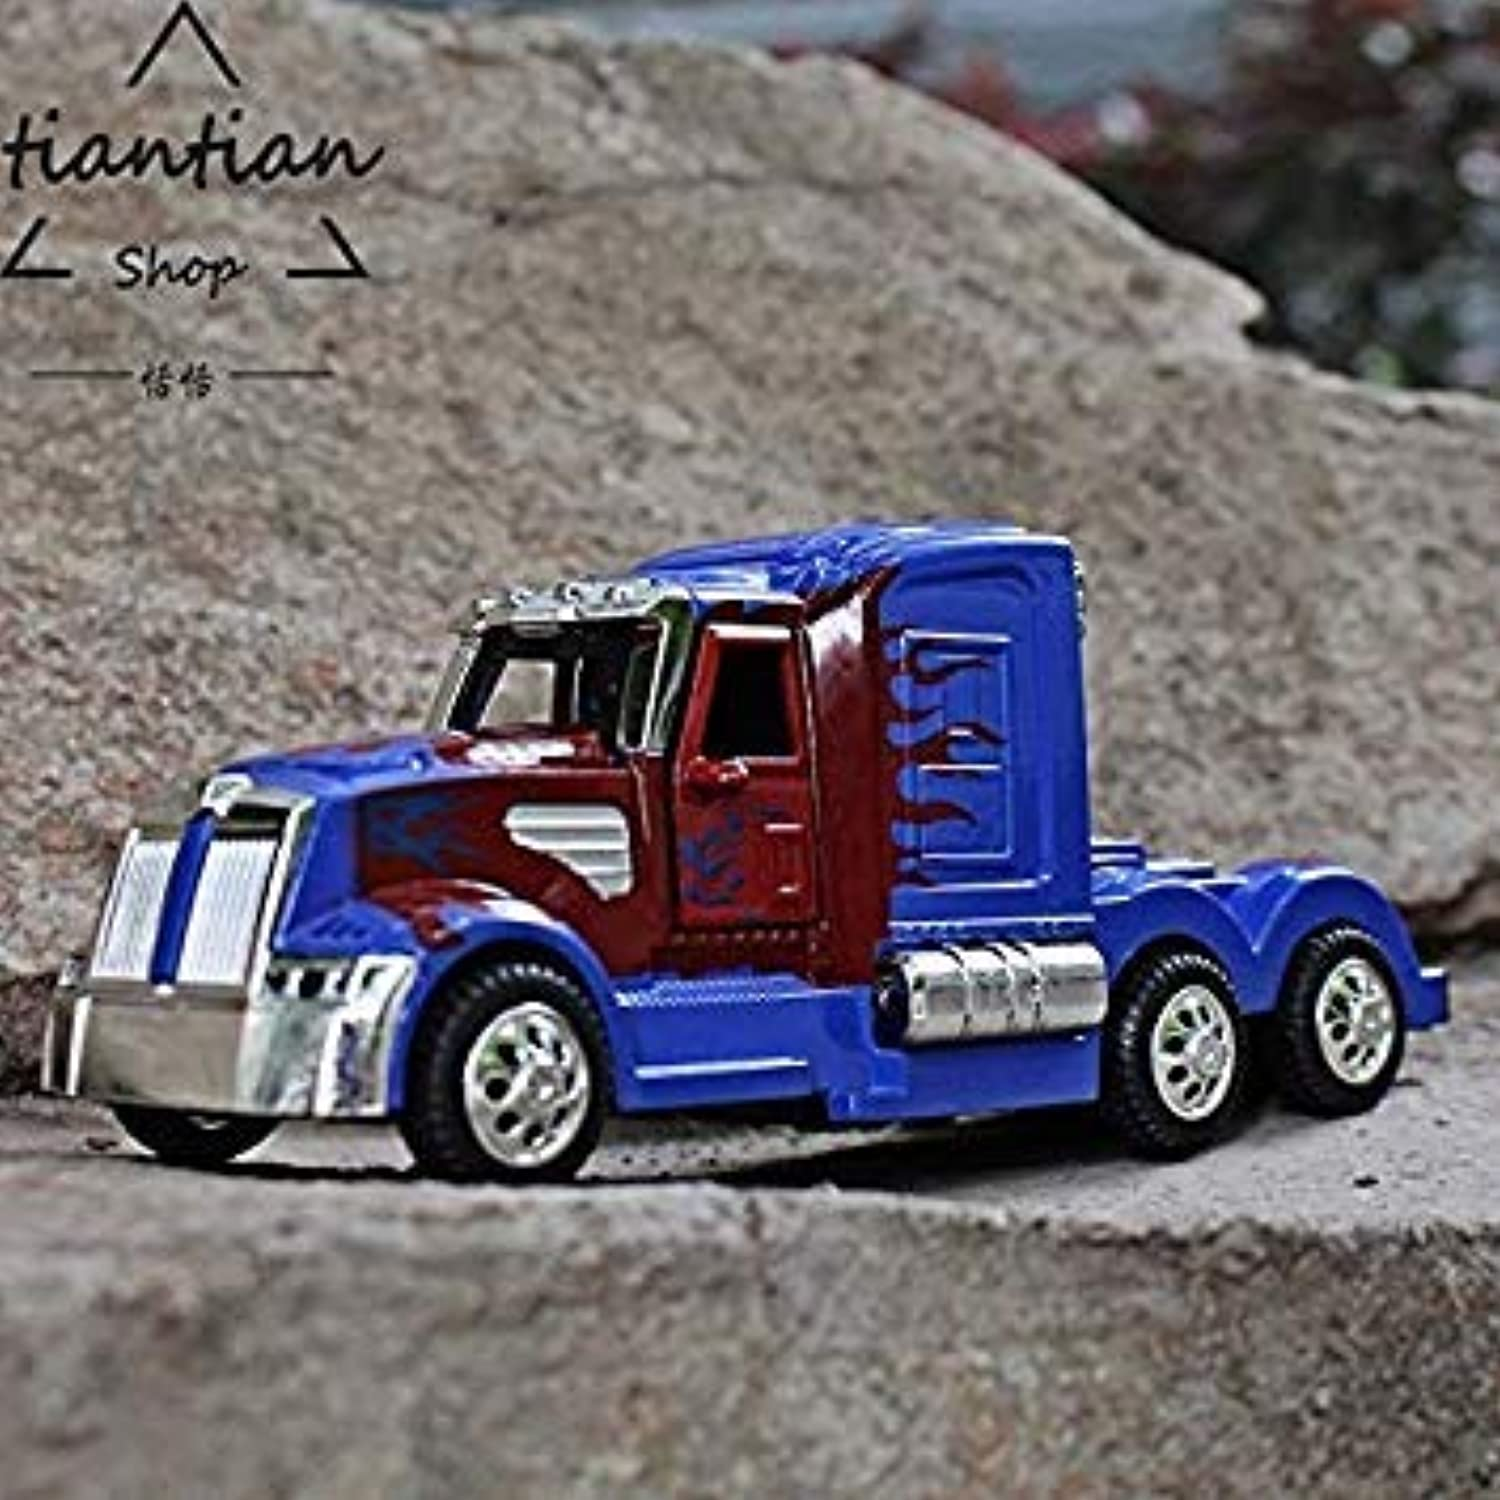 MZ Kids Toys 1 32 Truck Car Model Metallic Material Collection Decoration Open The Door Sound Lights